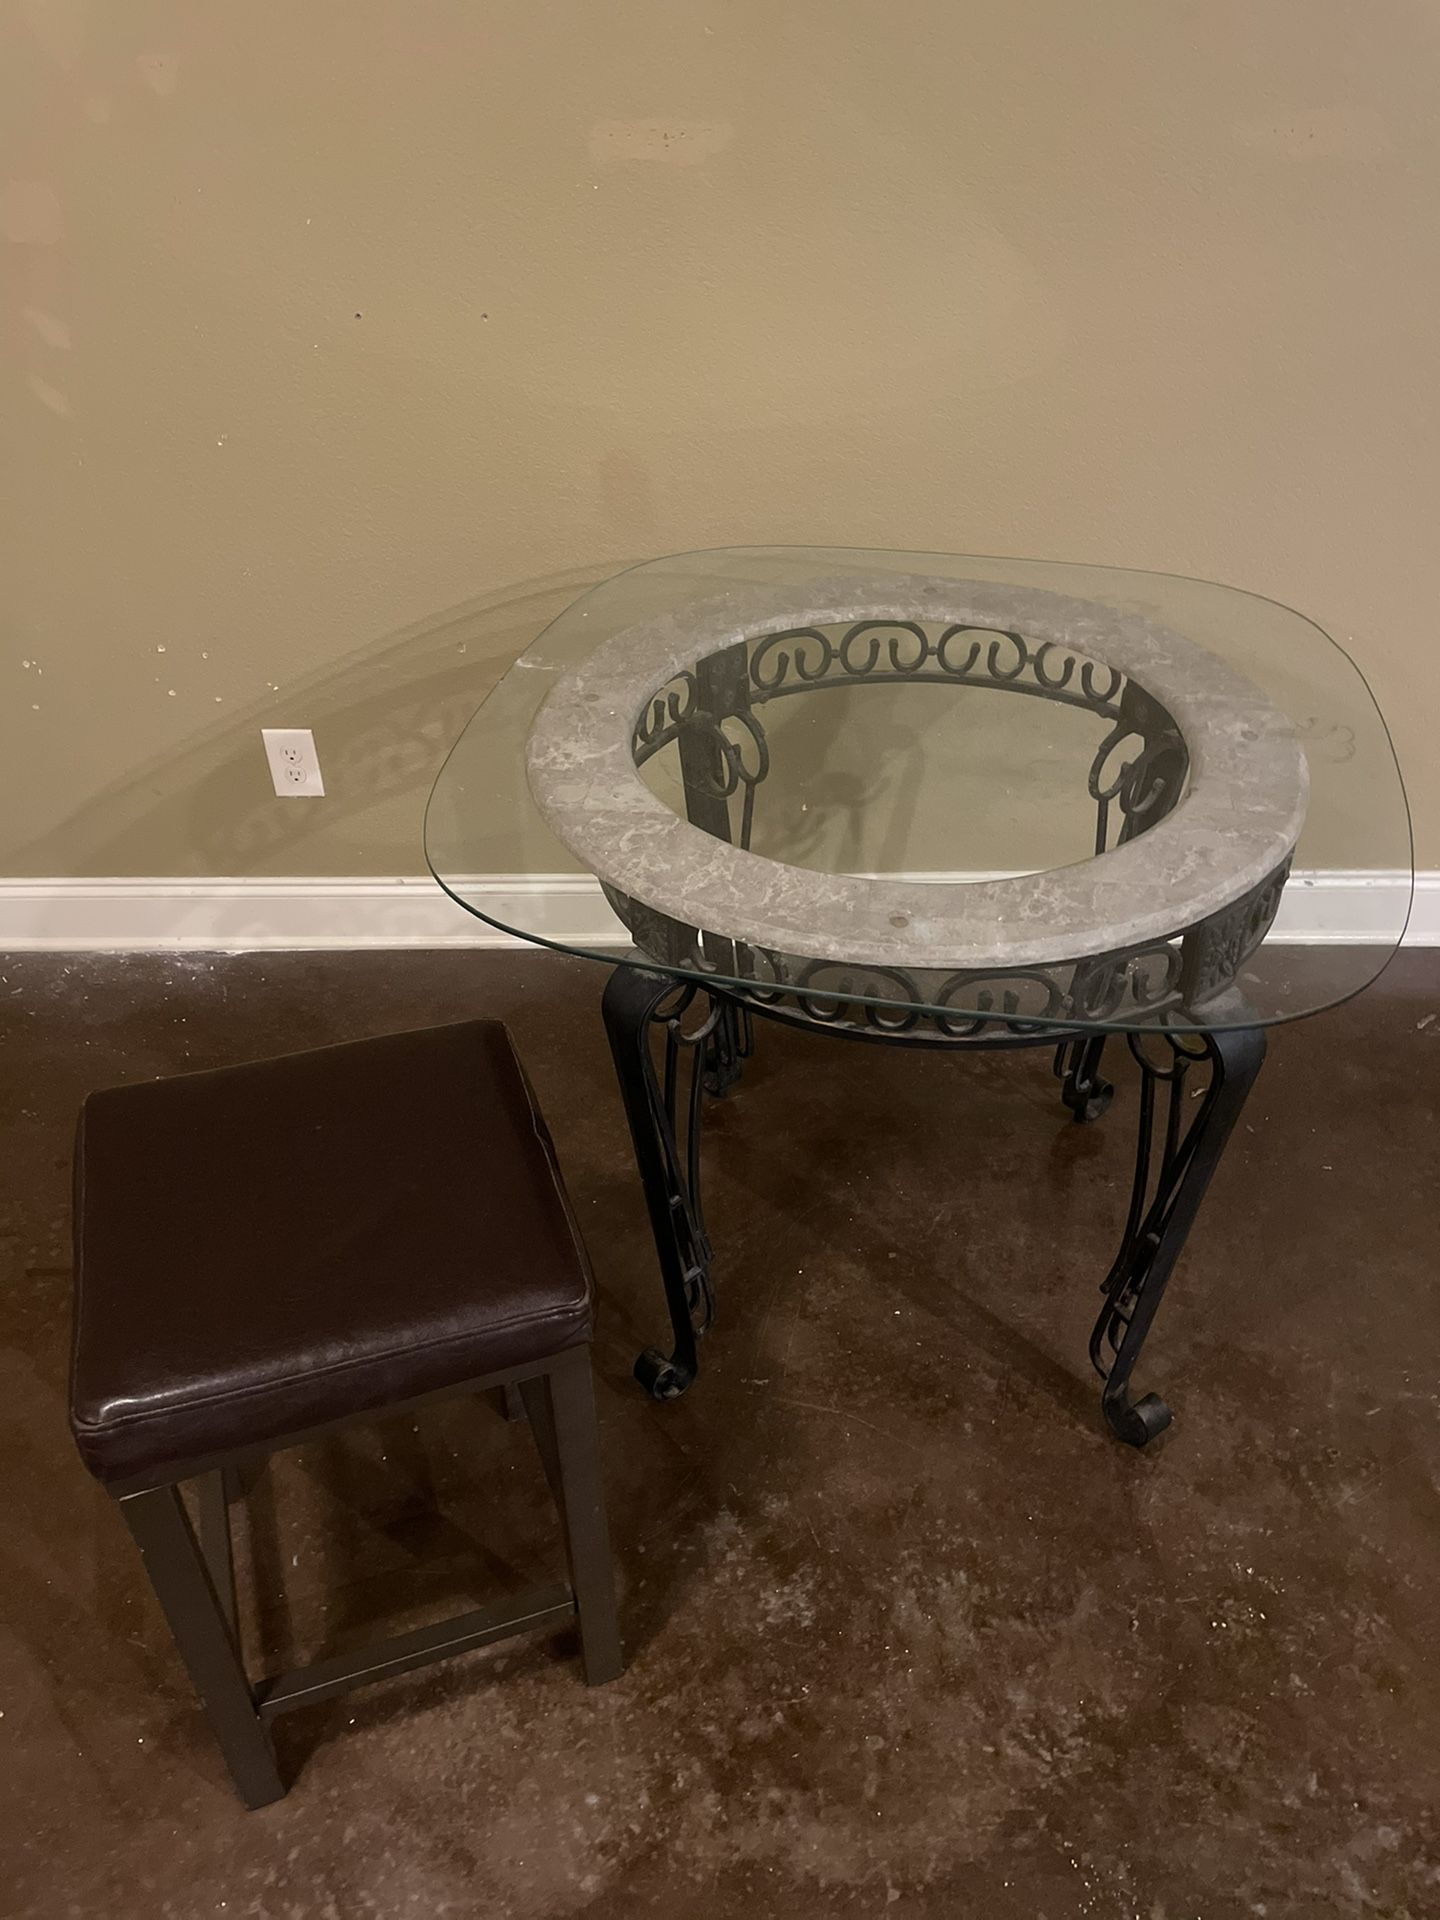 Glass table and 1 chair